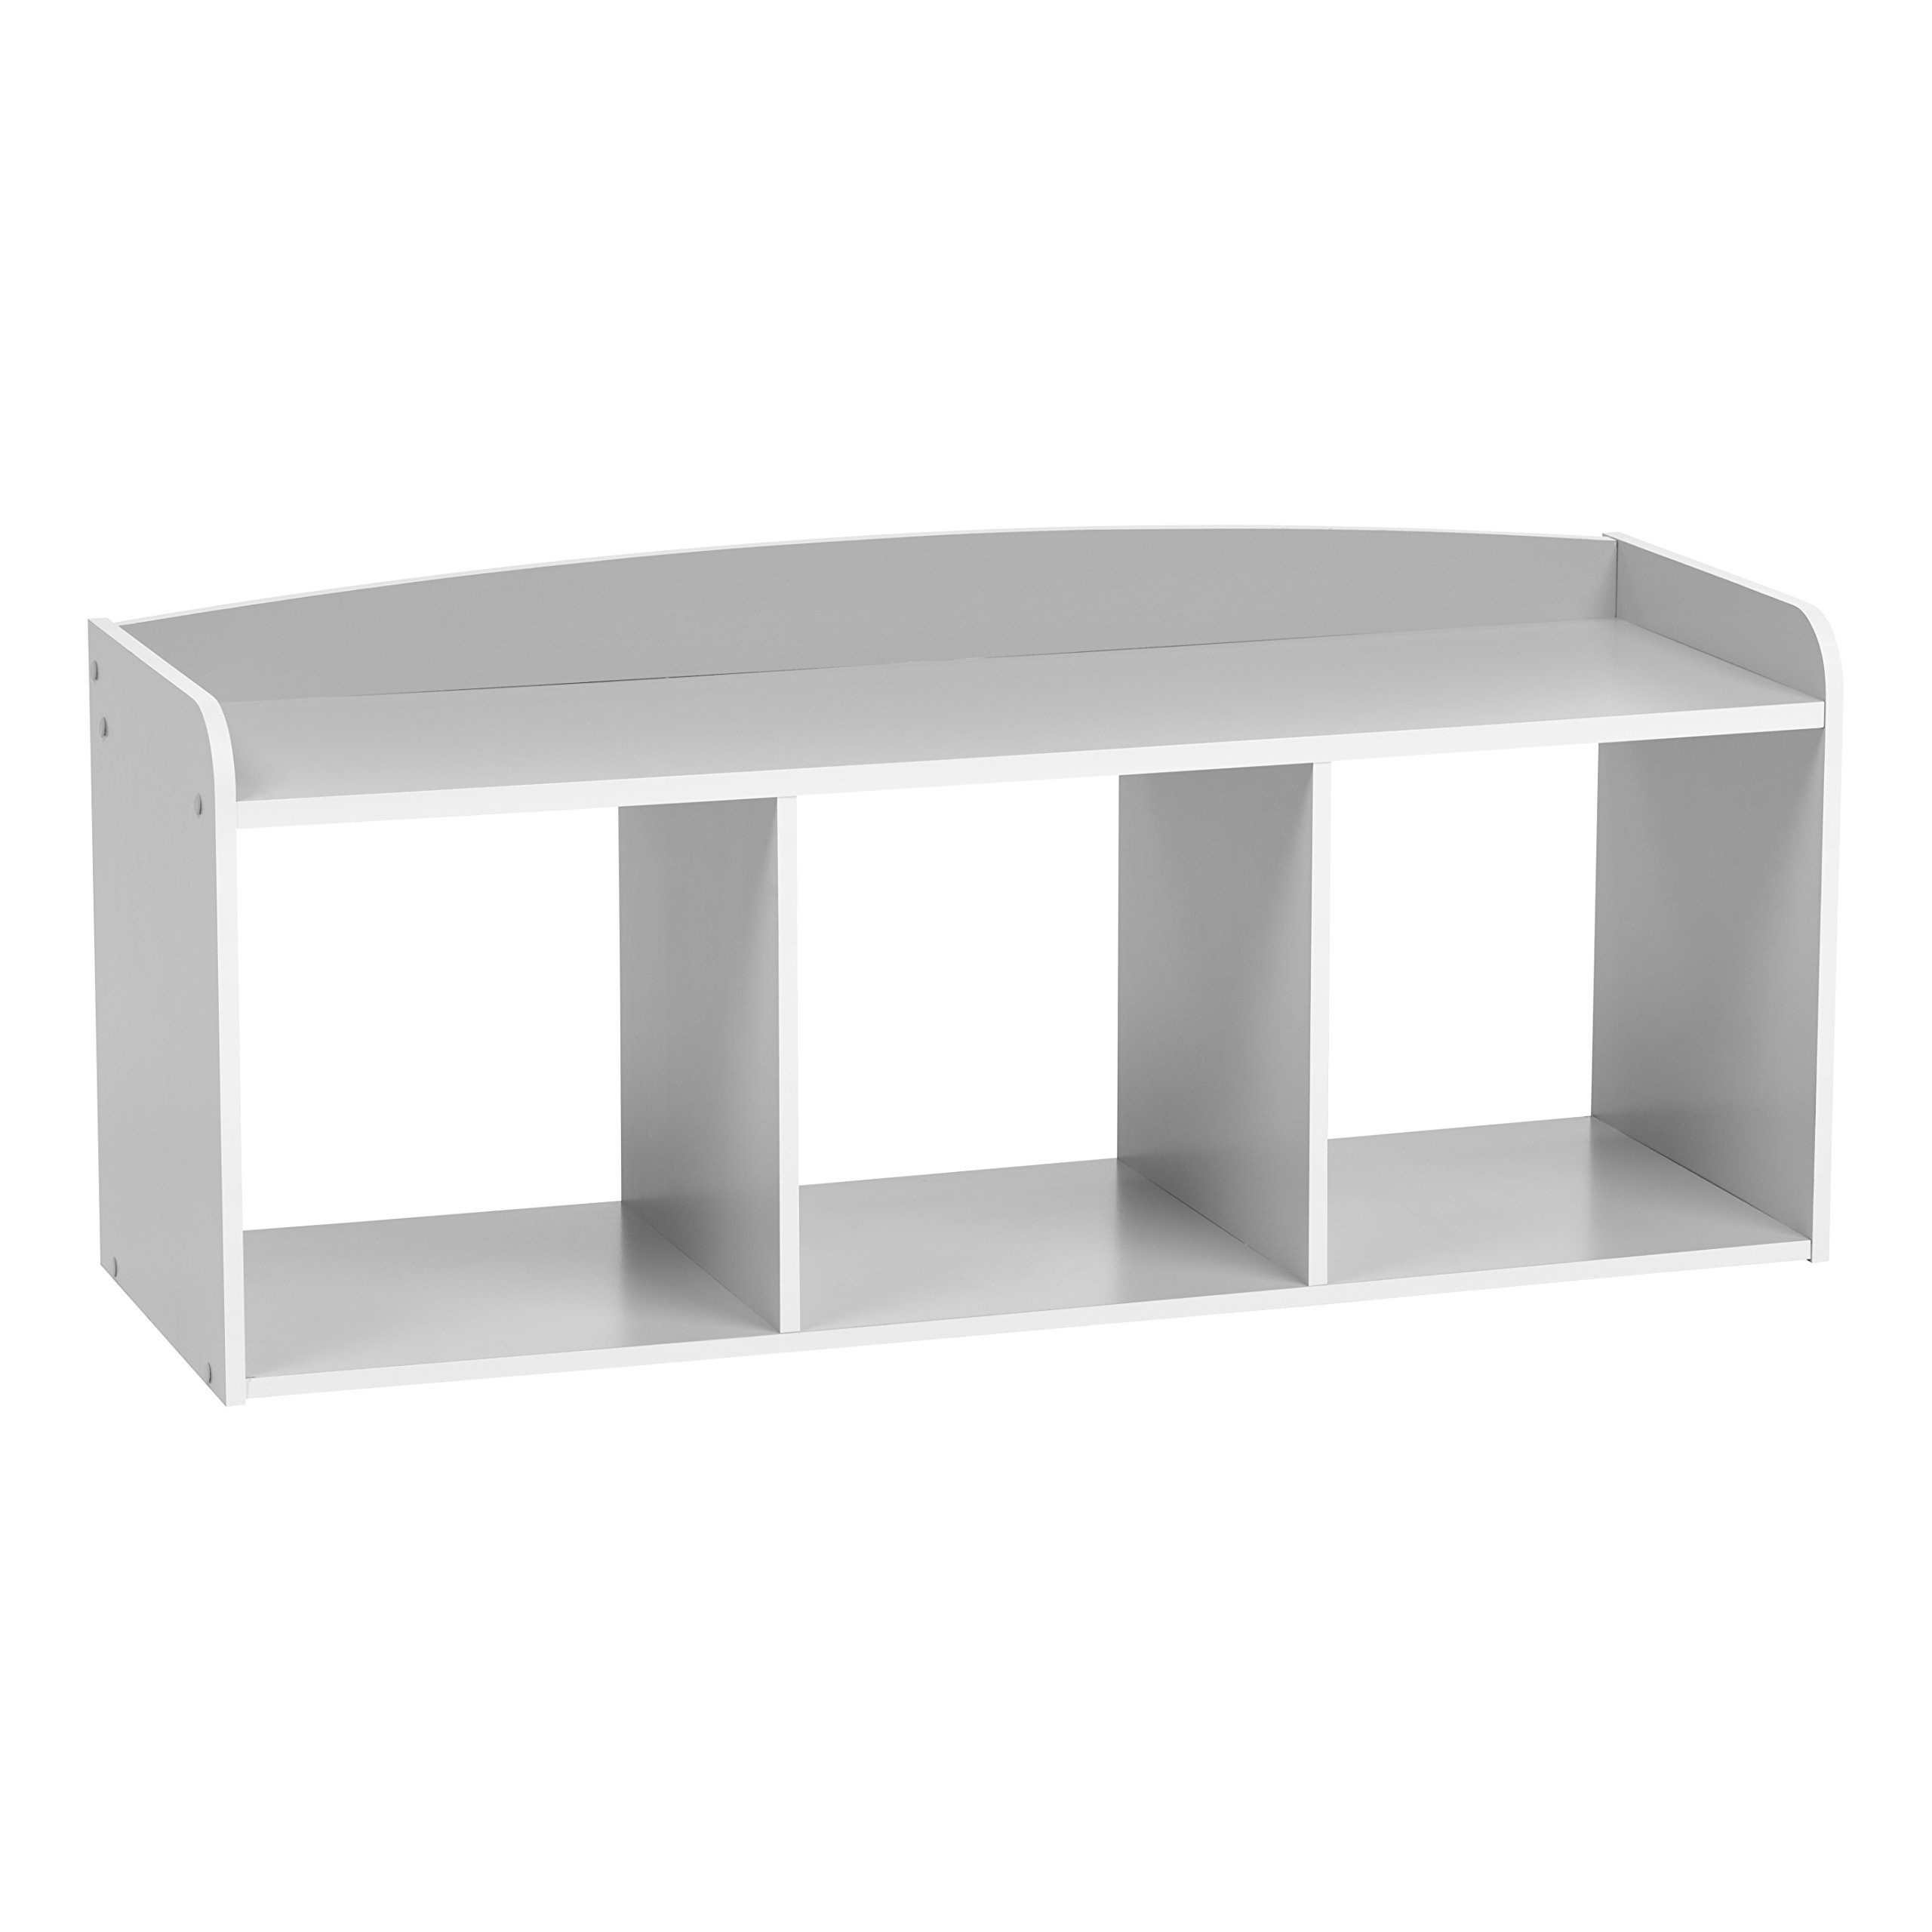 IRIS USA 595905 Kid's Wooden Storage Bench, Gray